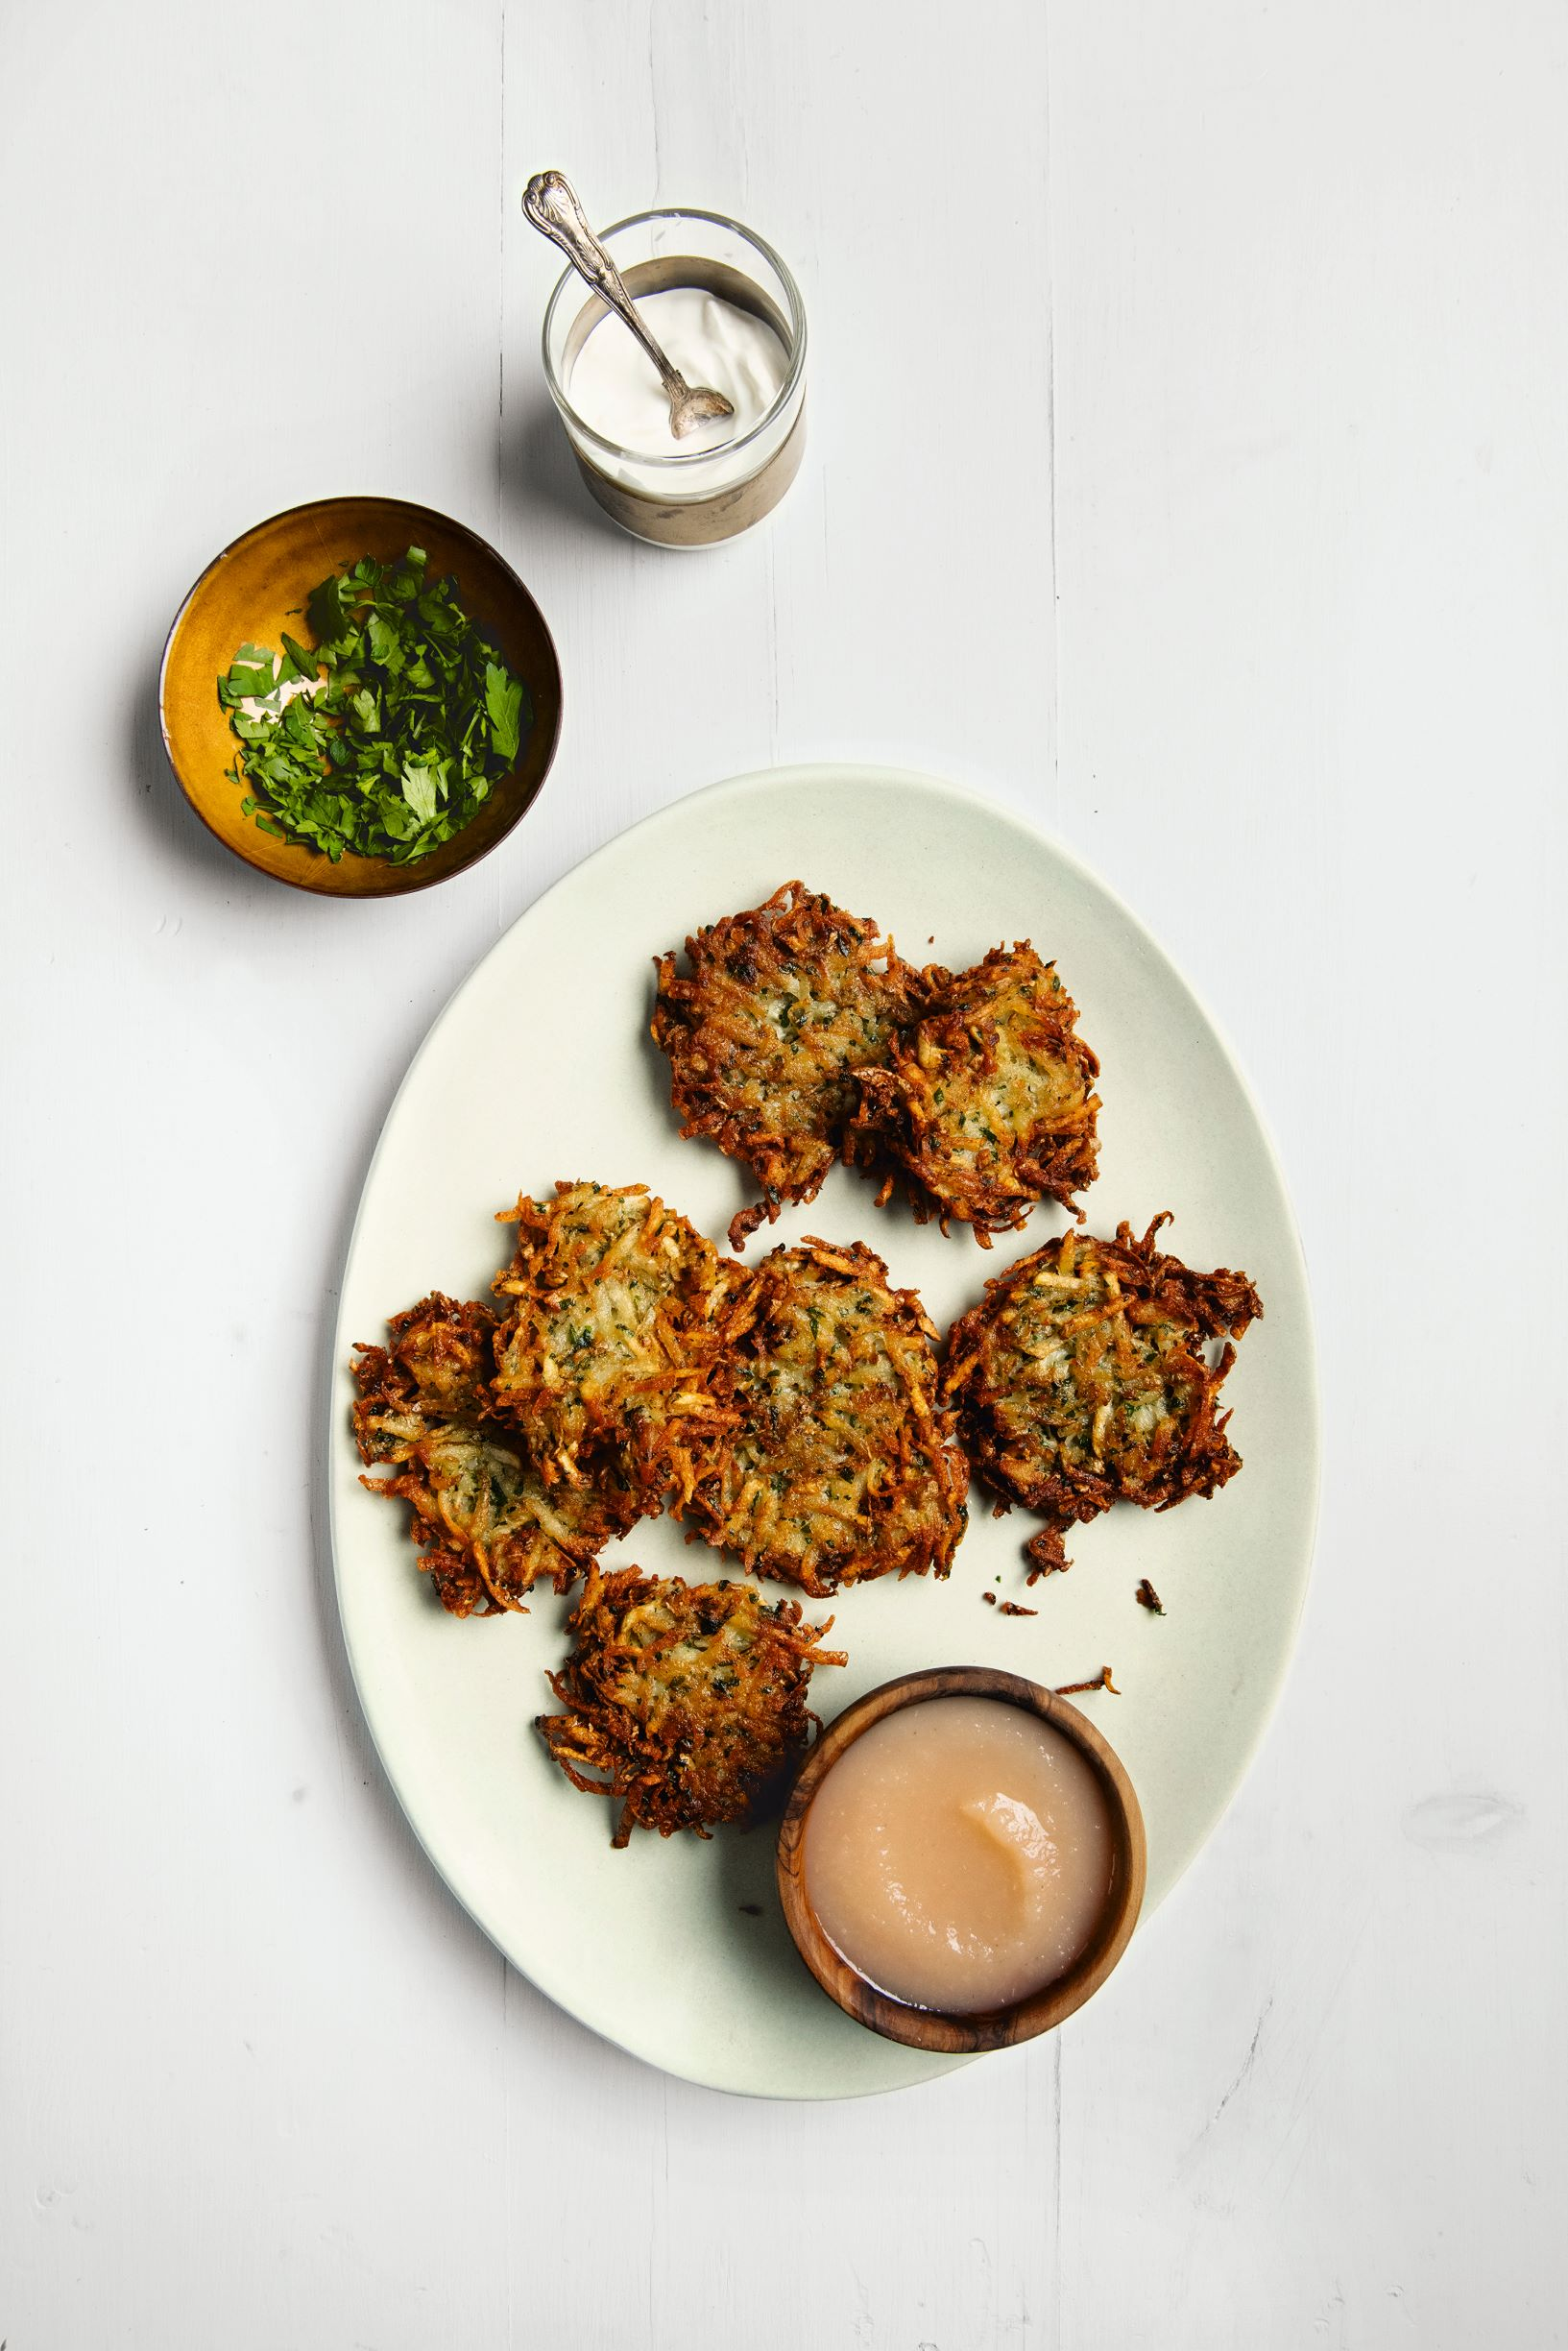 Potato latkes - The Jewish Cookbook